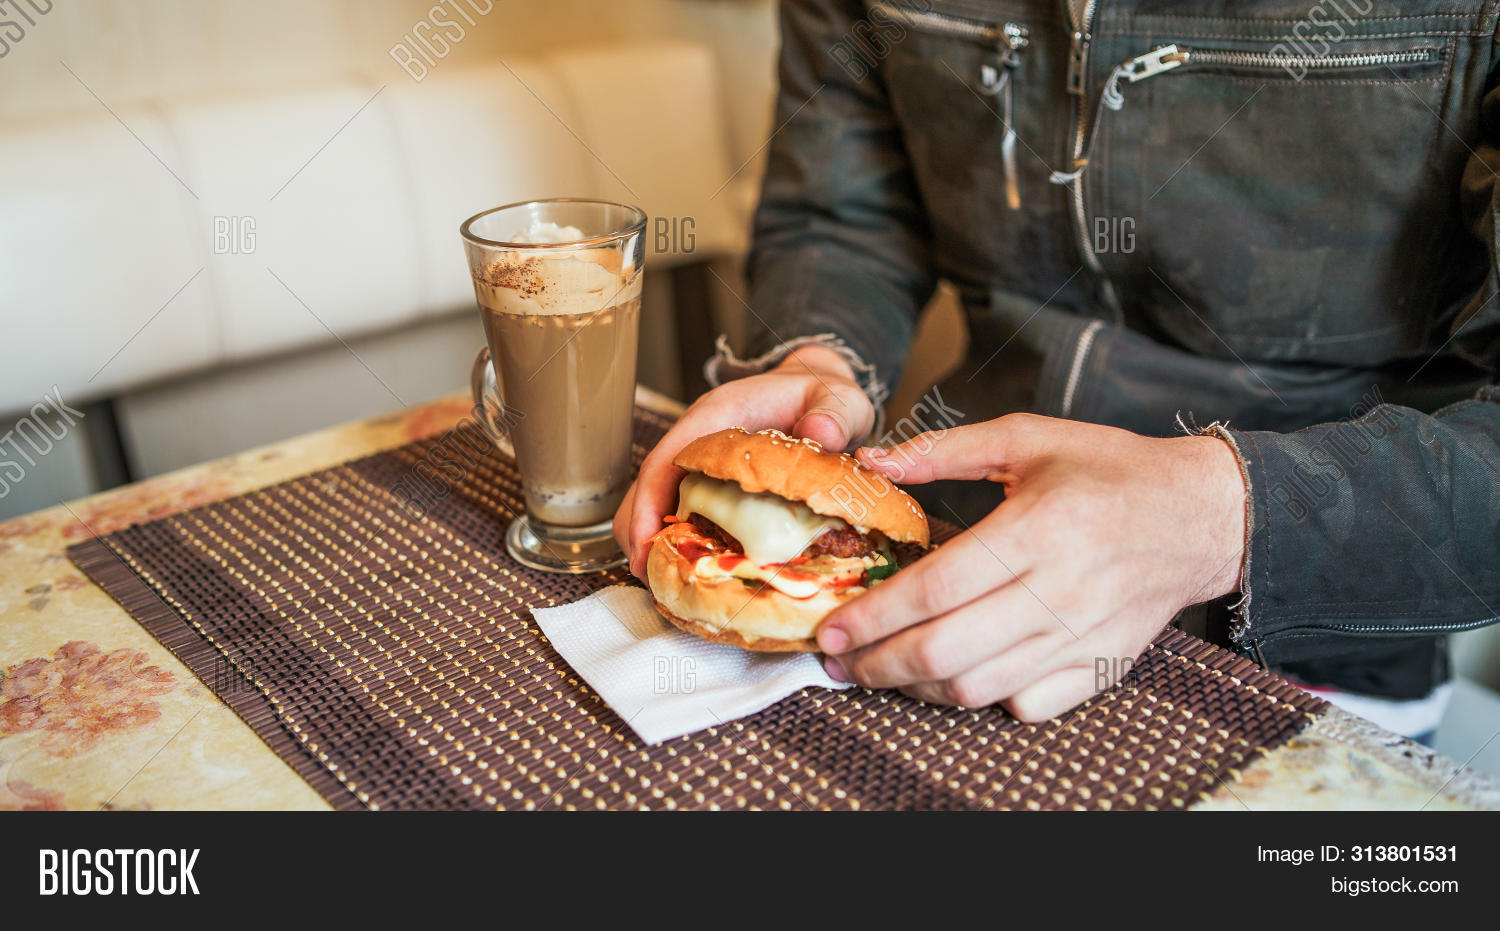 Food Photography Hot Image Photo Free Trial Bigstock